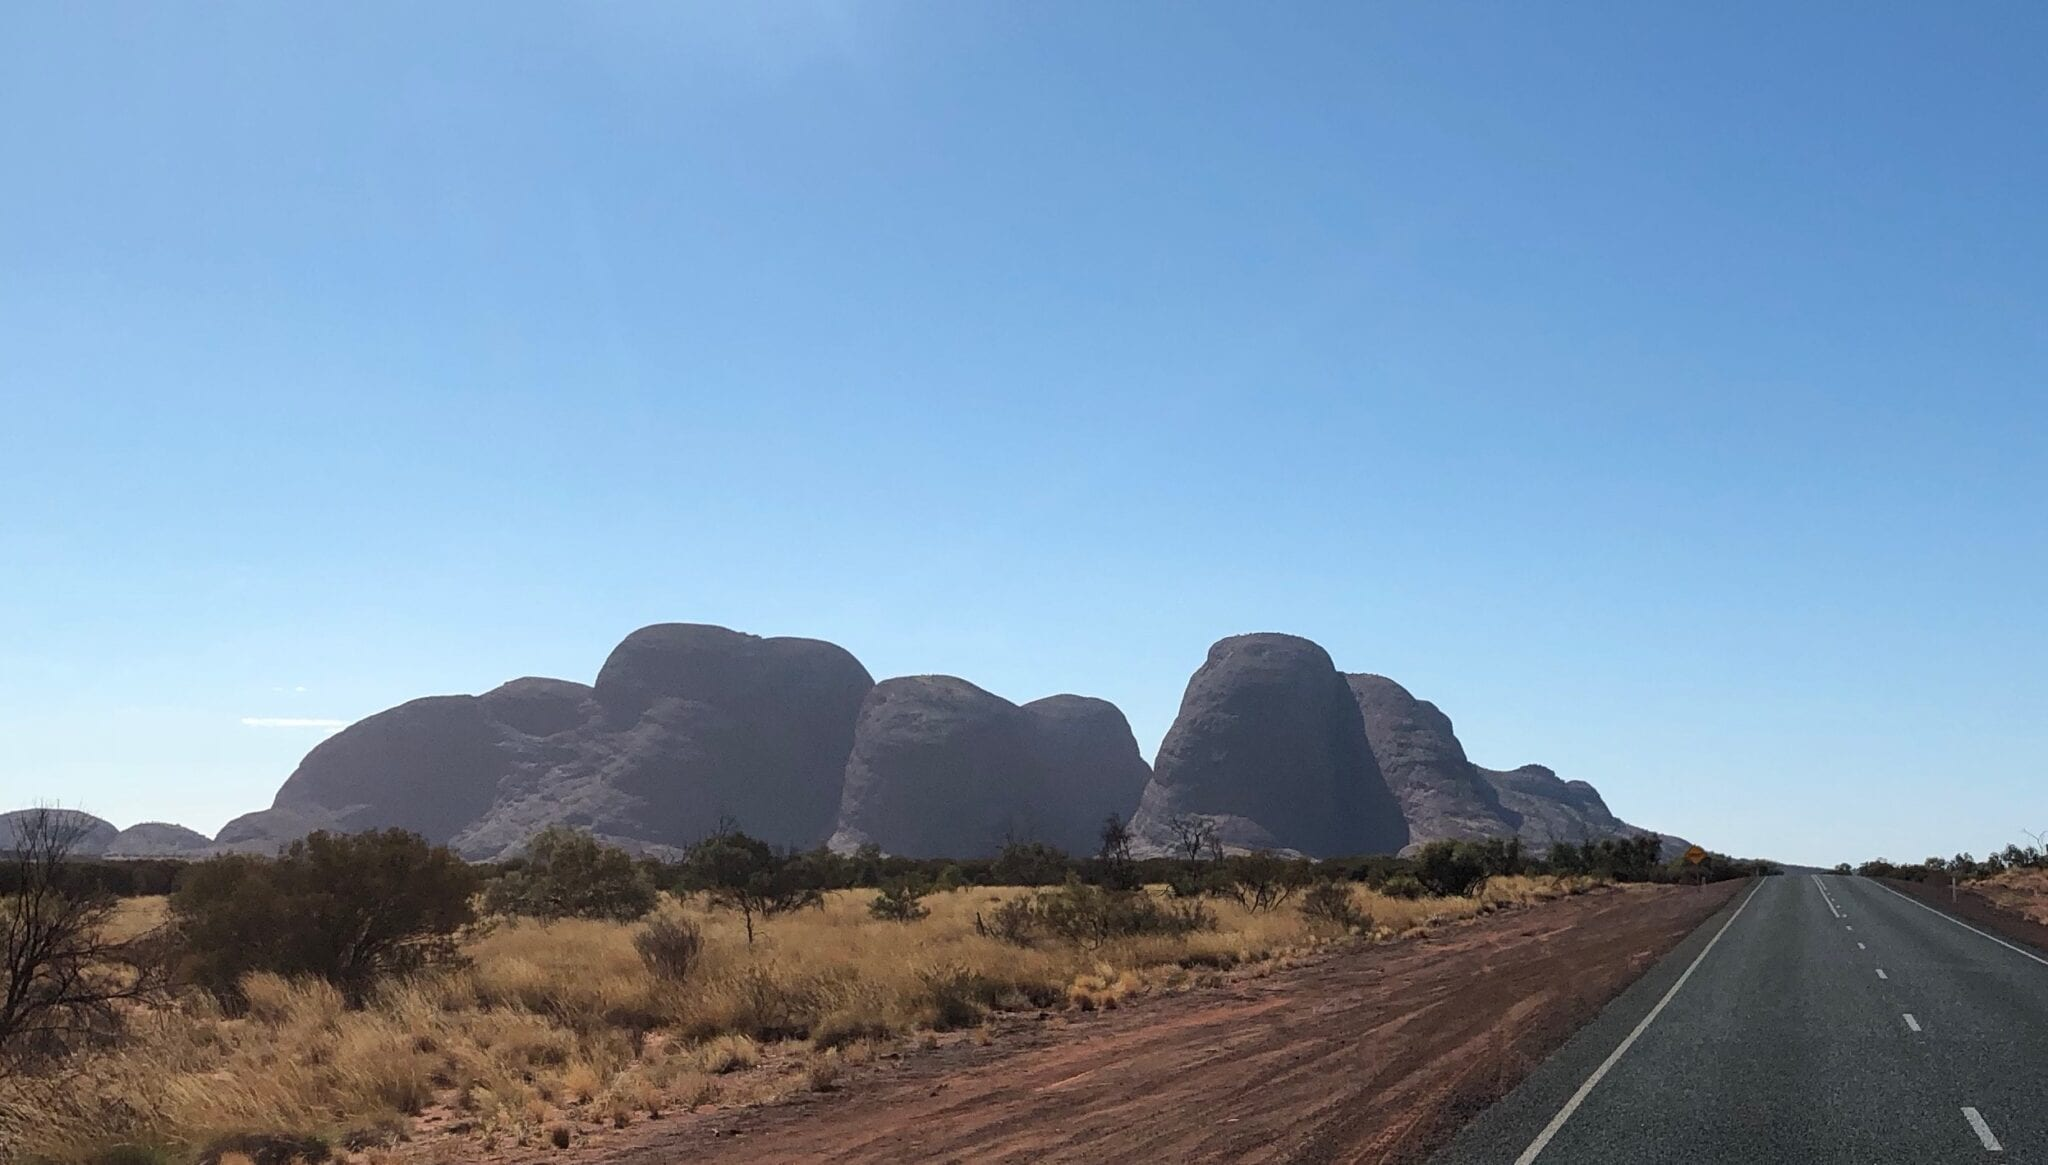 The mysterious domes of Kata Tjuta taking shape as we drive east along the Great Central Road.